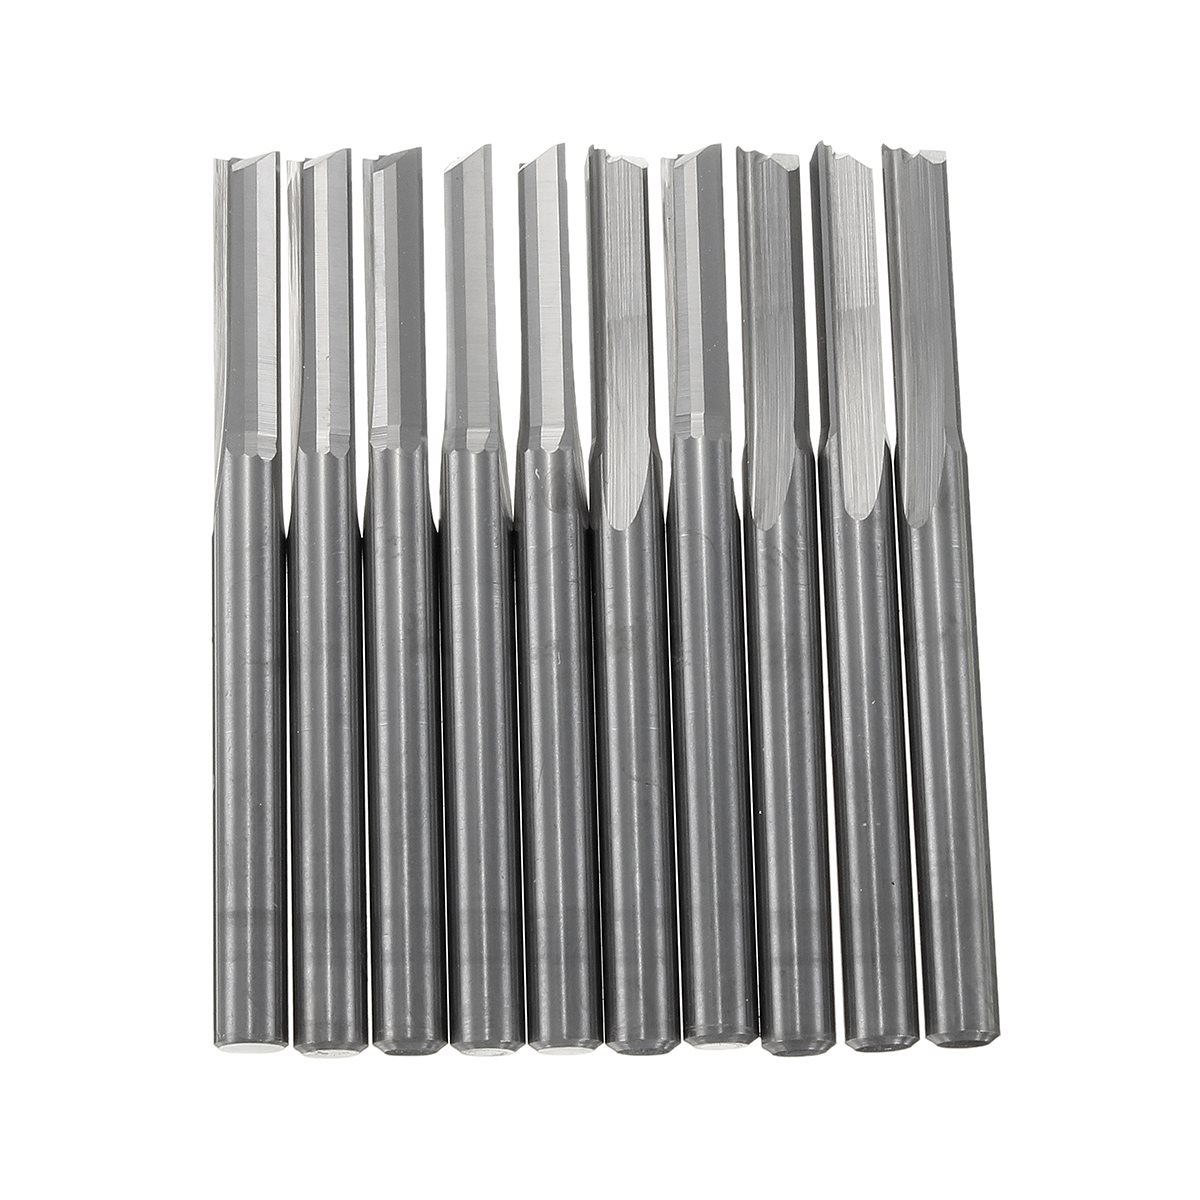 10pcs/set 3.175x12mm 2 Double Flutes Straight Slot Milling Cutter Router Cutting Bit Woodworking Engraving Machine  цены